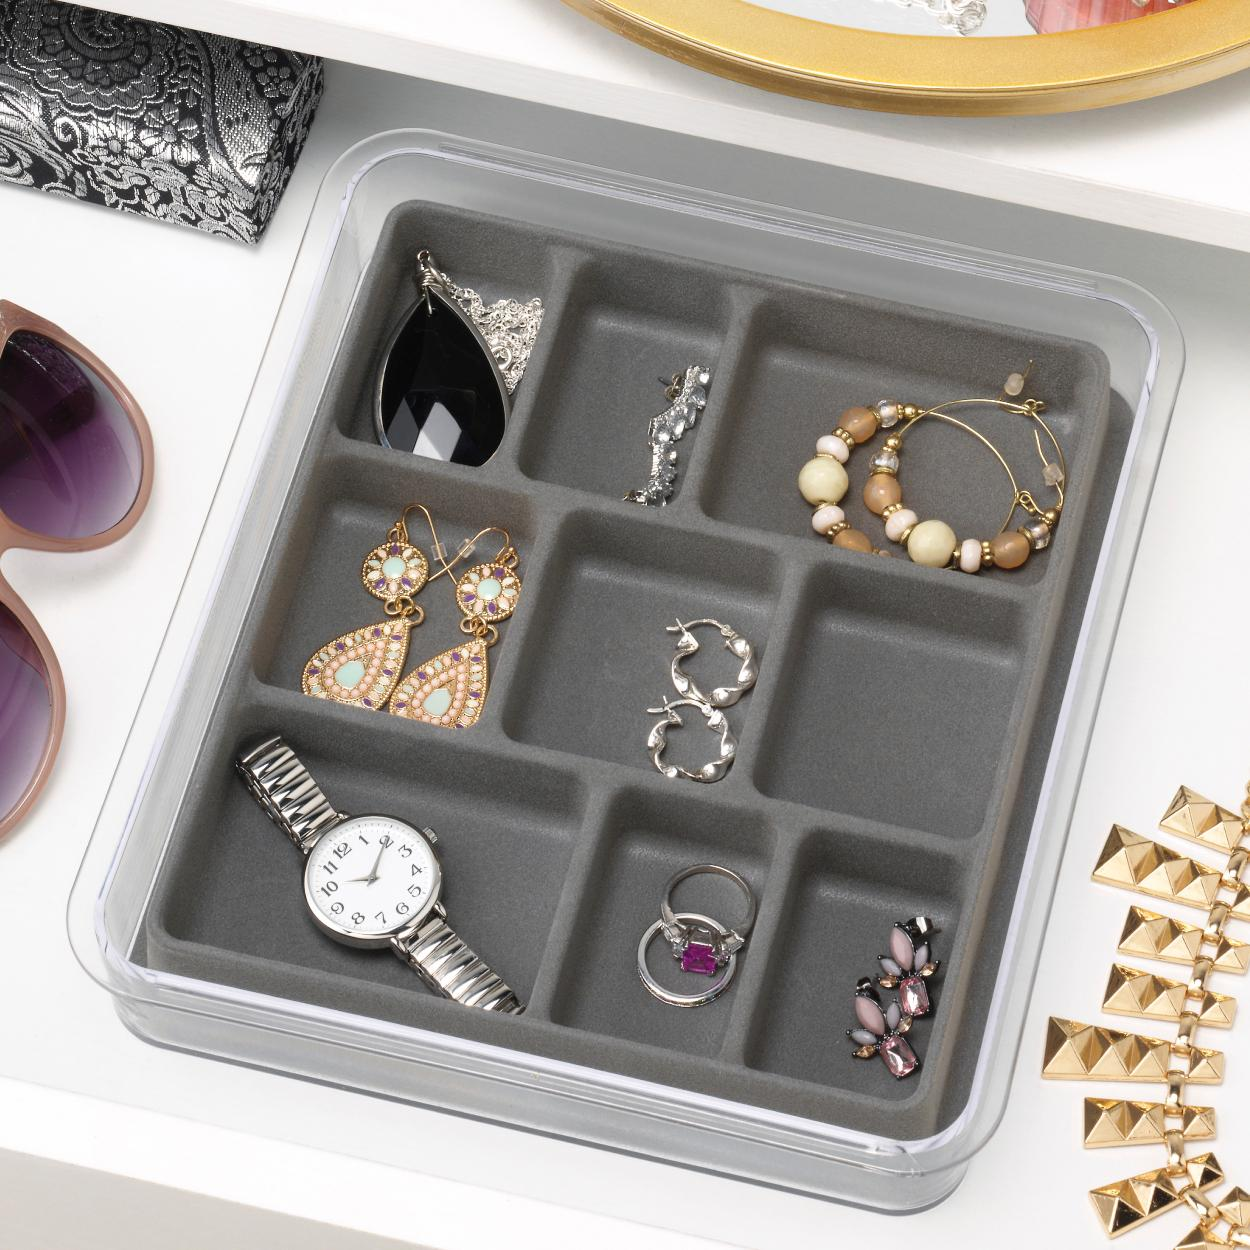 Amazon.com: Whitmor 7/40-Section Stackable Tray: Home